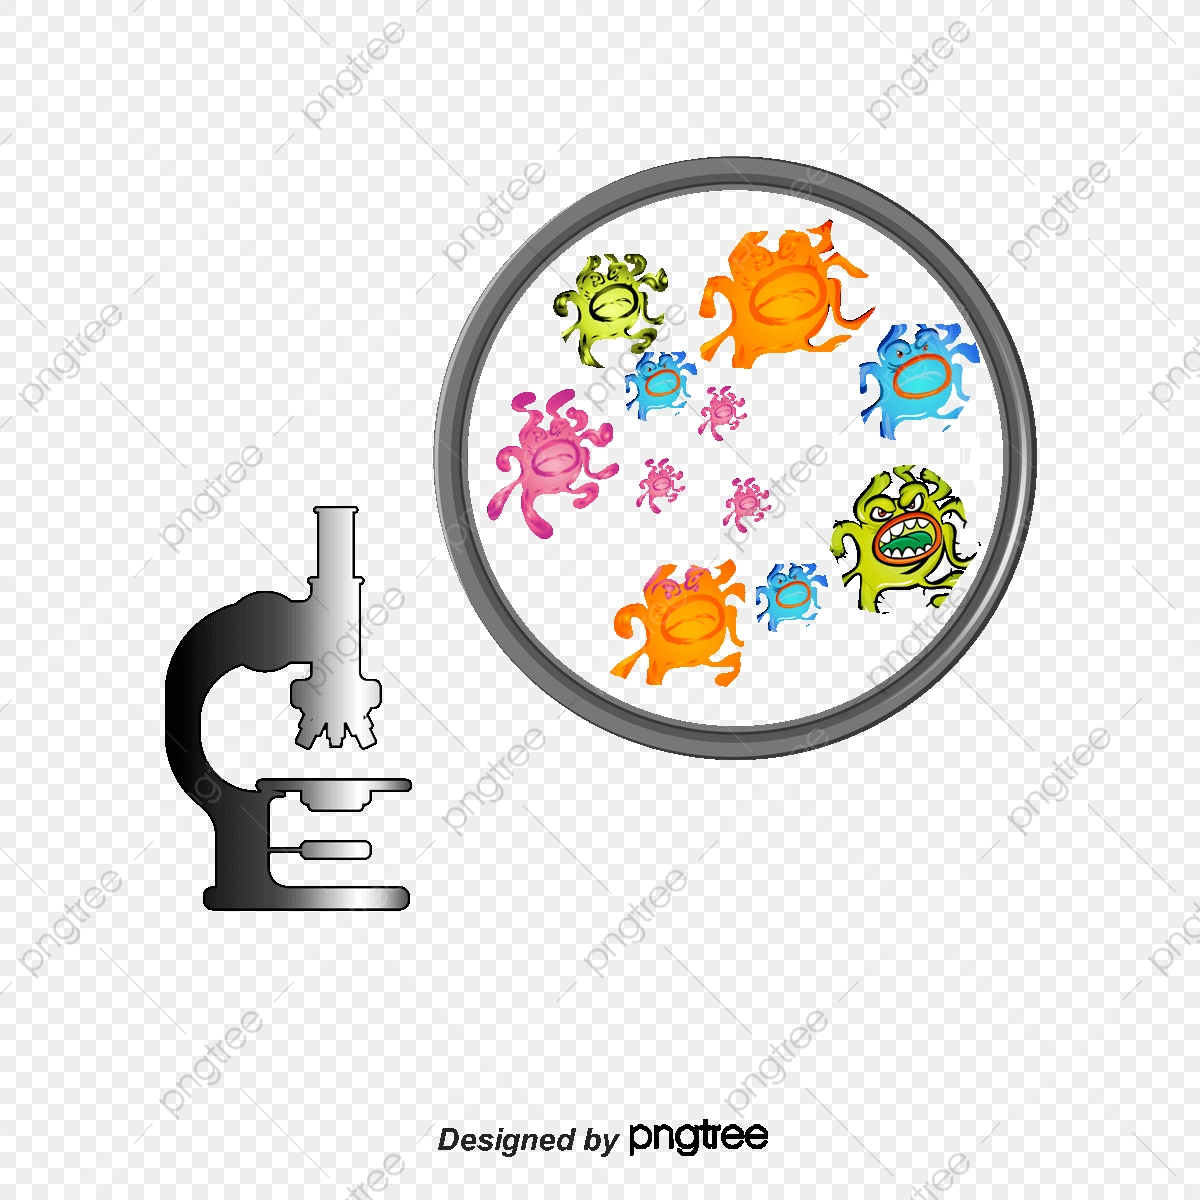 vector bacteria and microscopic bacterial microscope cartoon bacteria png transparent clipart image and psd file for free download https pngtree com freepng vector bacteria and microscopic 1492508 html